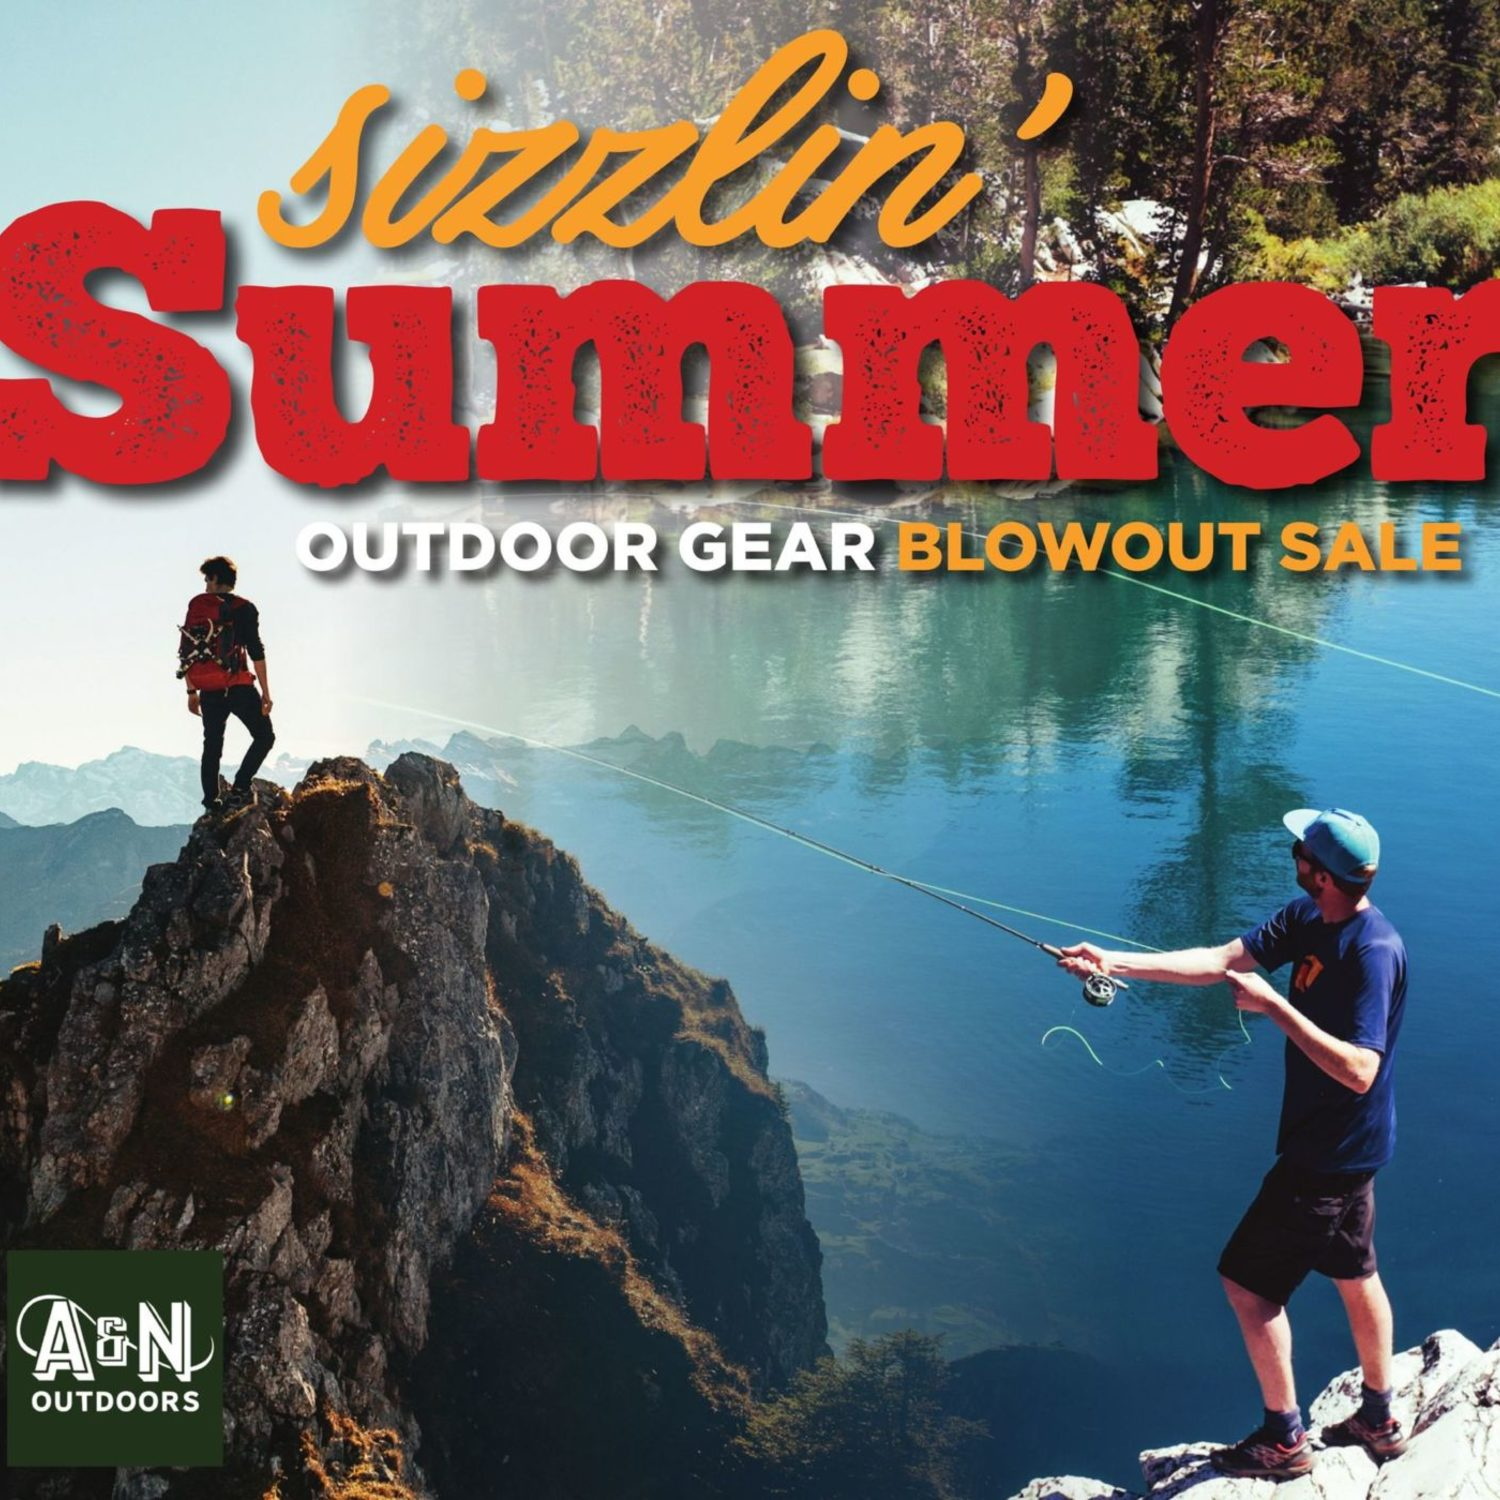 Army Navy Weekly Flyer Sizzlin Summer Outdoor Gear Blowout Sale